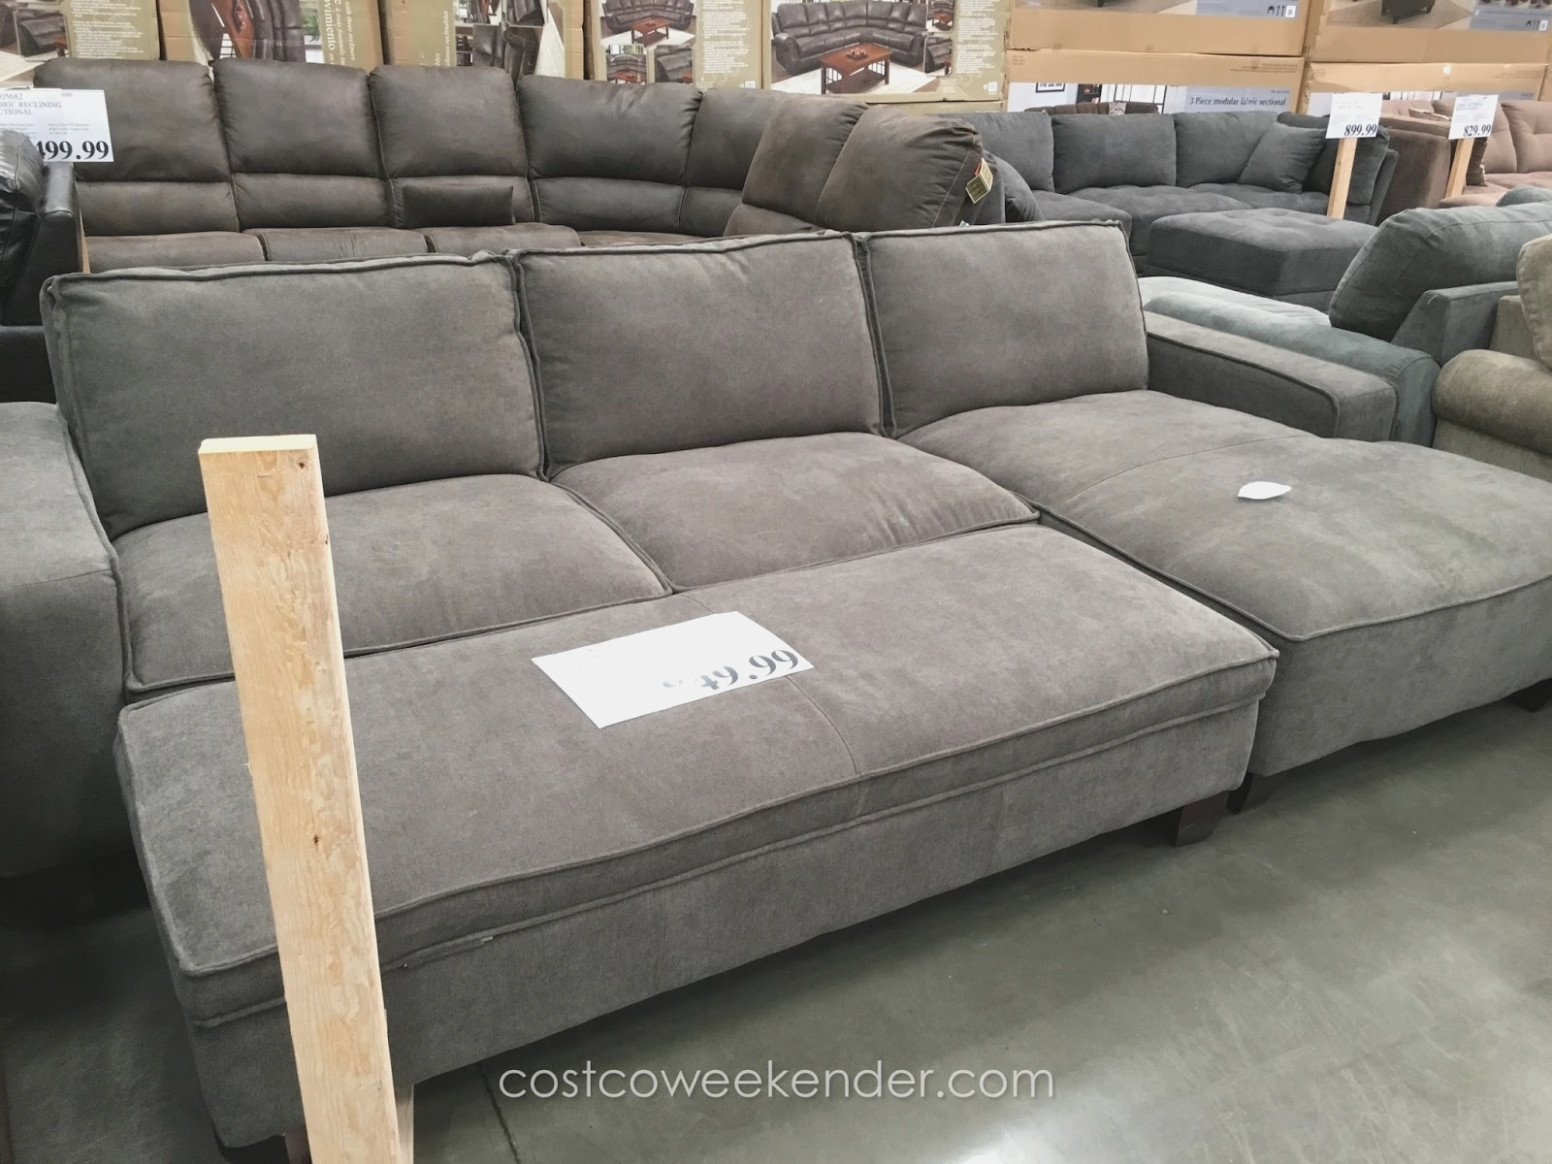 Winsome Sofa Bed Costco 47 With Chaise Lounge Ottoman Couches At throughout Taren Reversible Sofa/chaise Sleeper Sectionals With Storage Ottoman (Image 30 of 30)